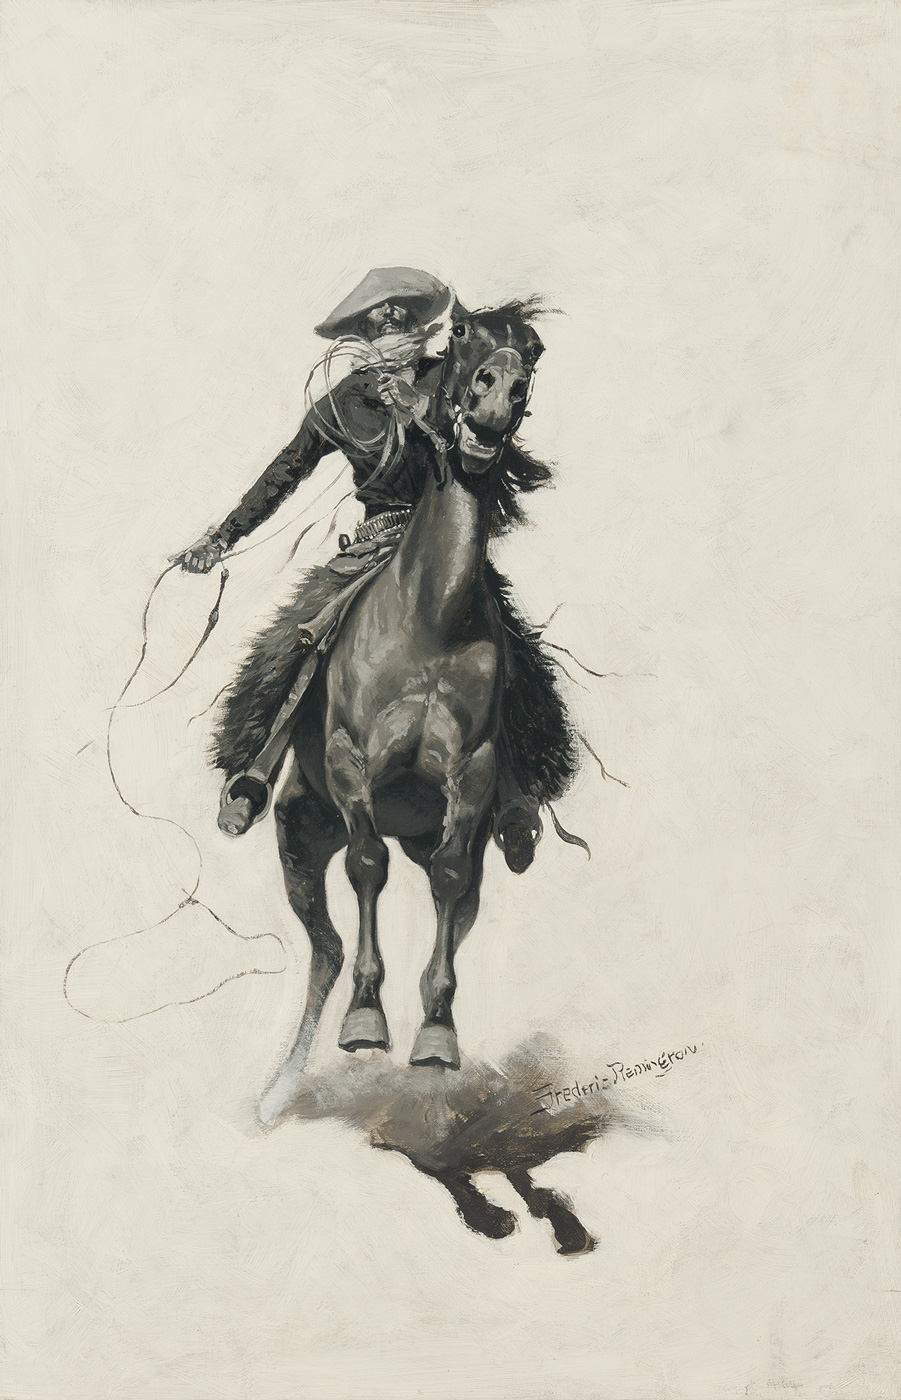 A cowboy with a lasso gallops on a horse towards the viewer.